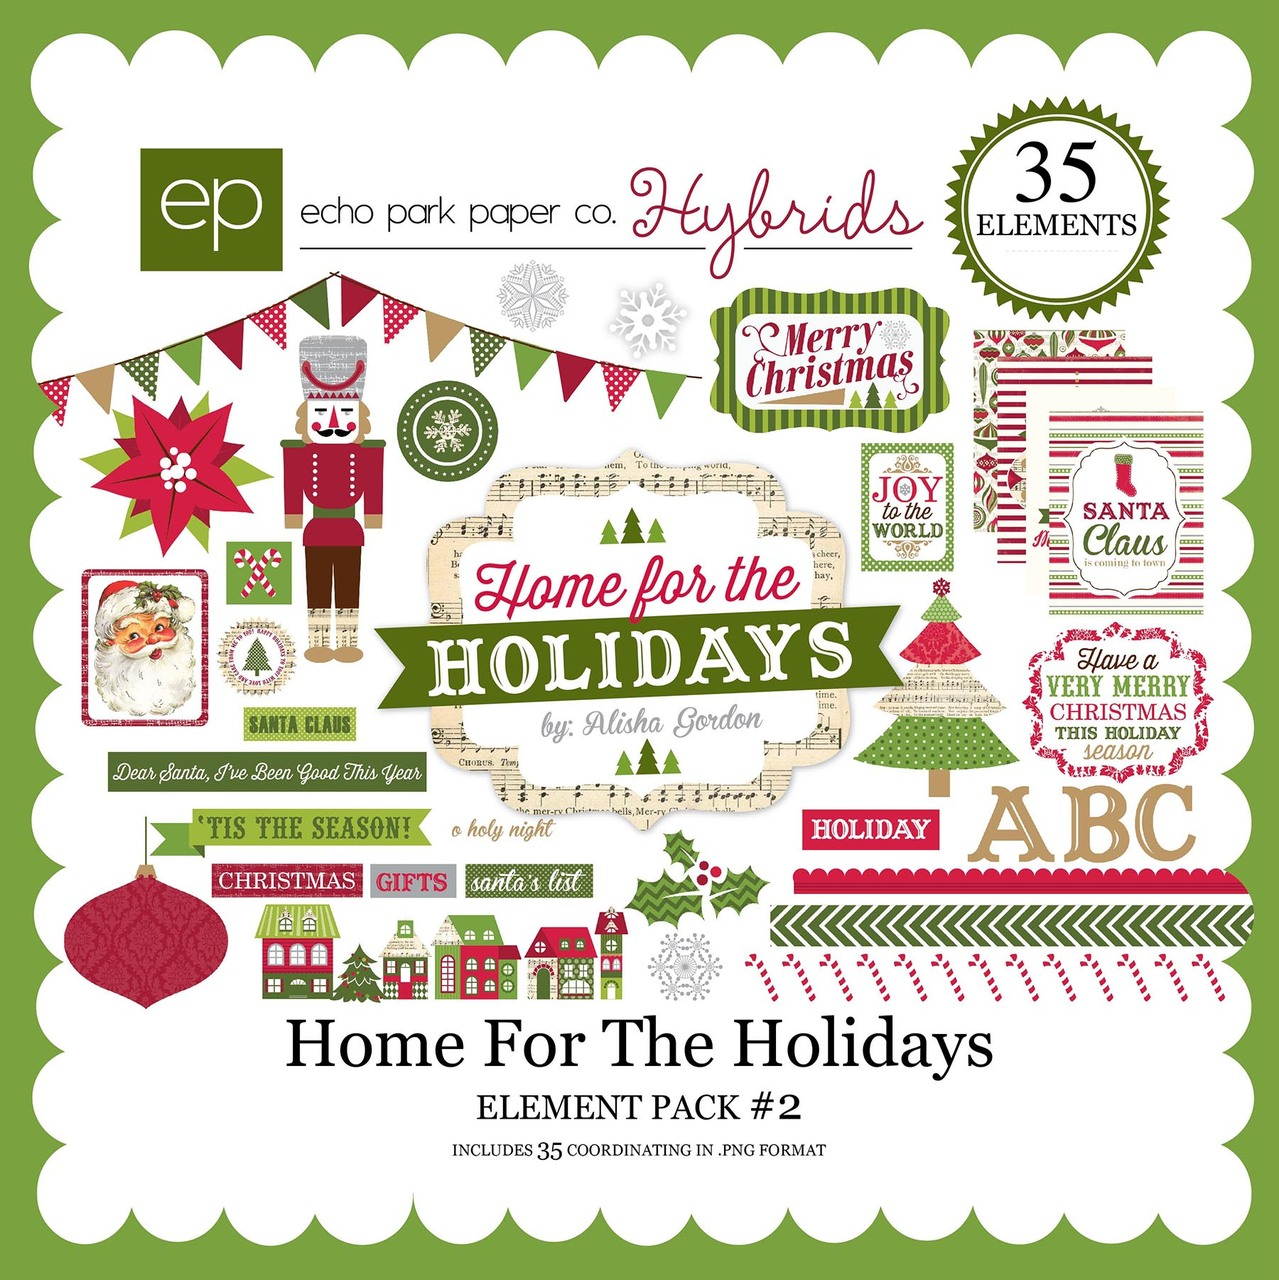 Home For The Holidays Element Pack #2